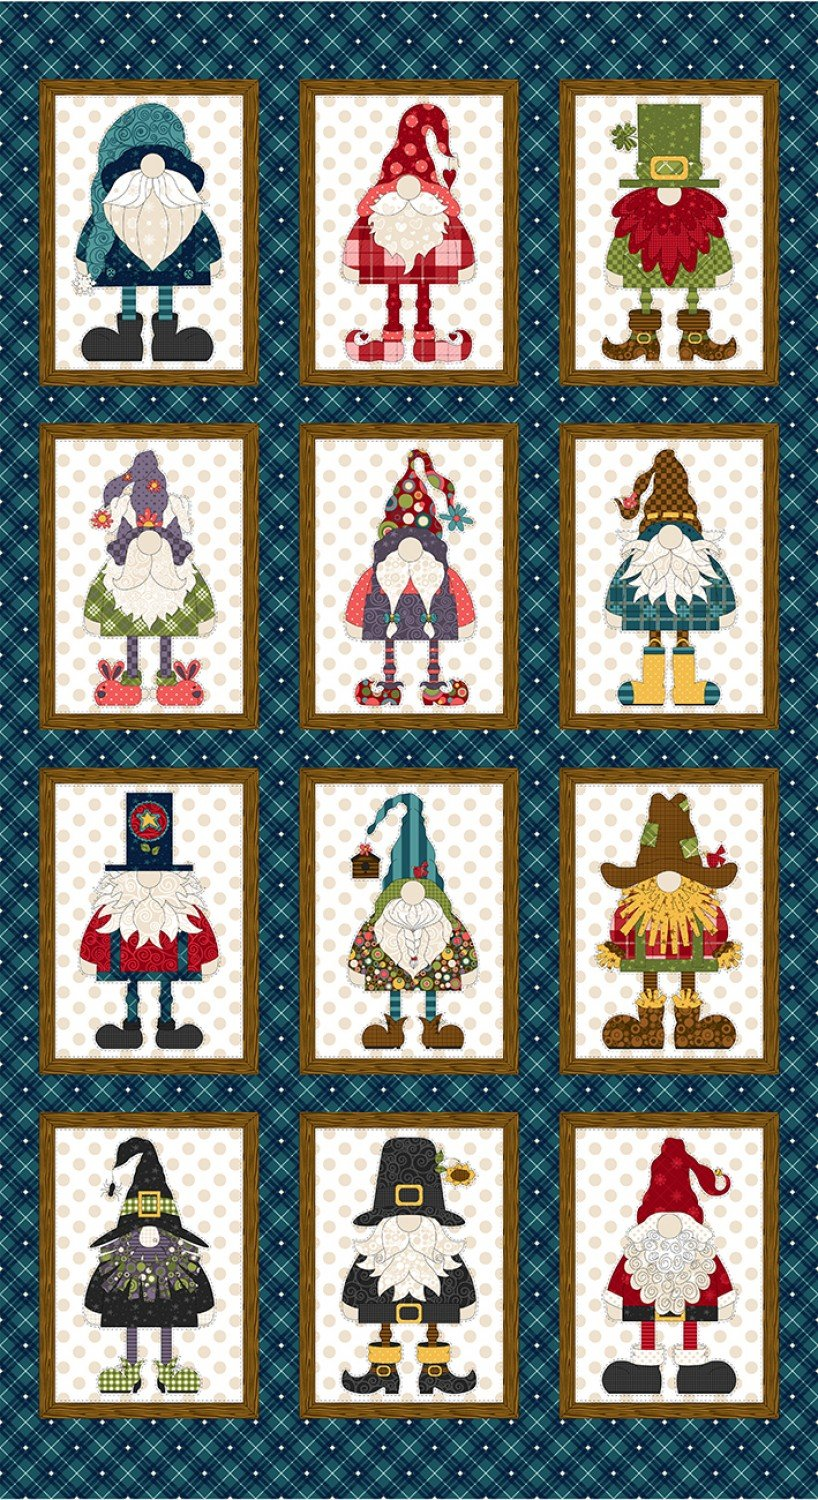 Gnome for the Holidays Quilt Panel by Kaytlyn Kuebler for Henry Glass